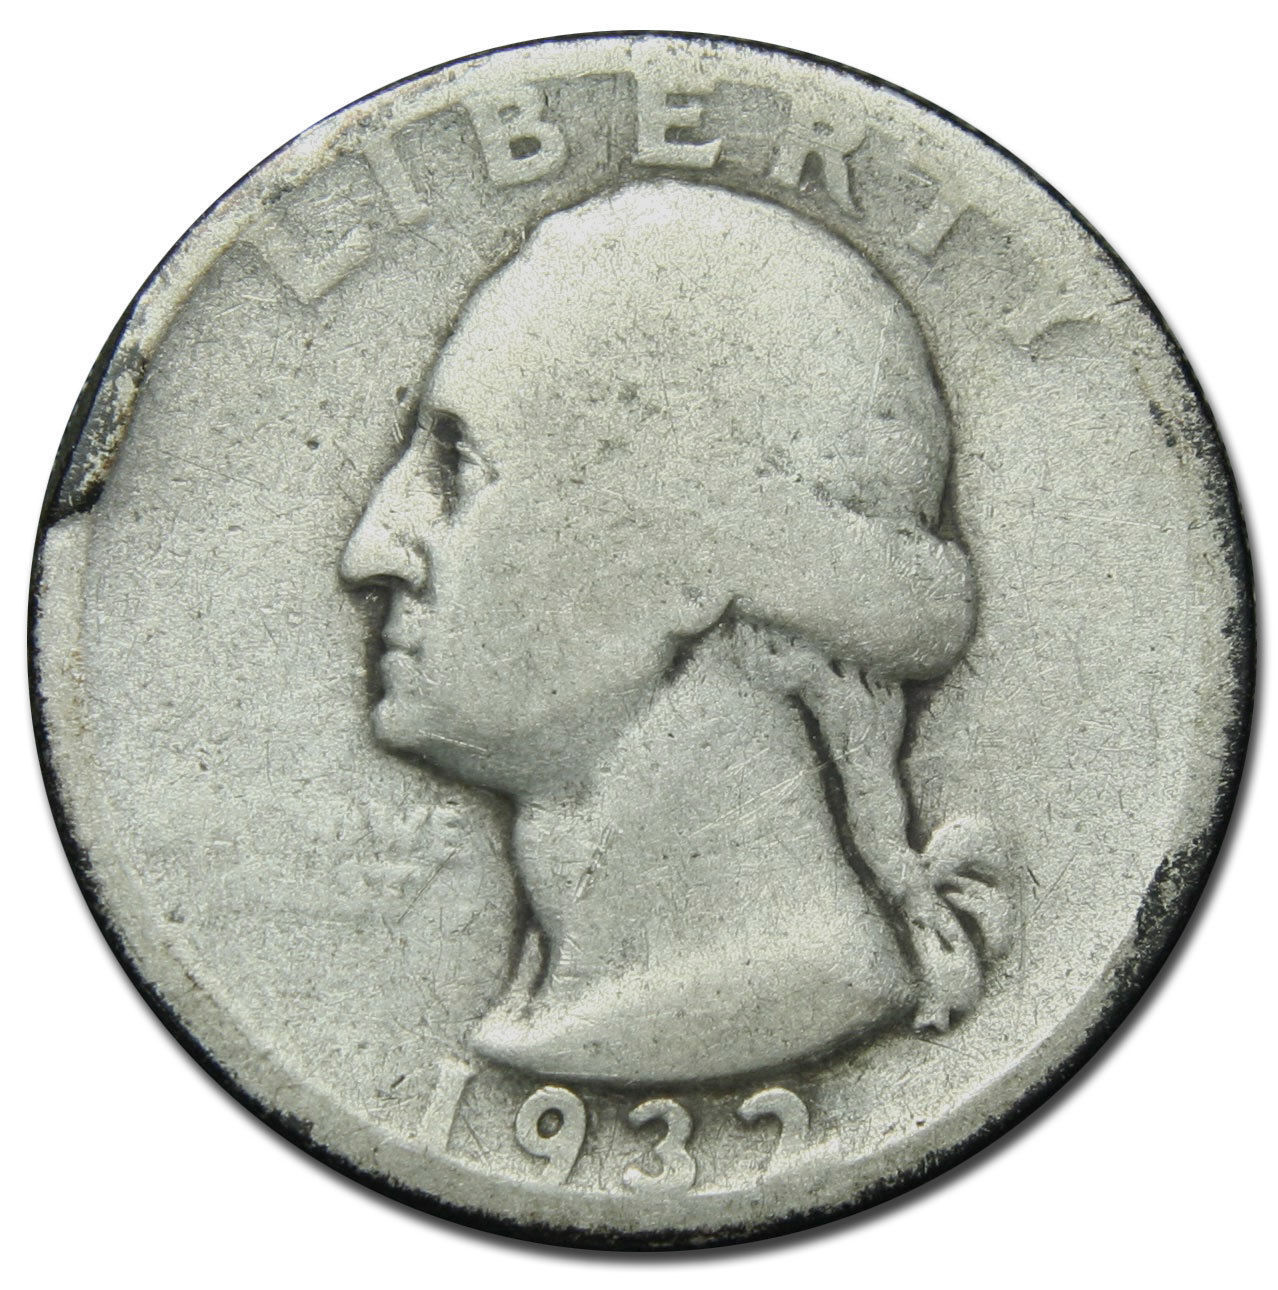 1932D George Washington Quarter 90% Silver Coin Lot# MZ 2801